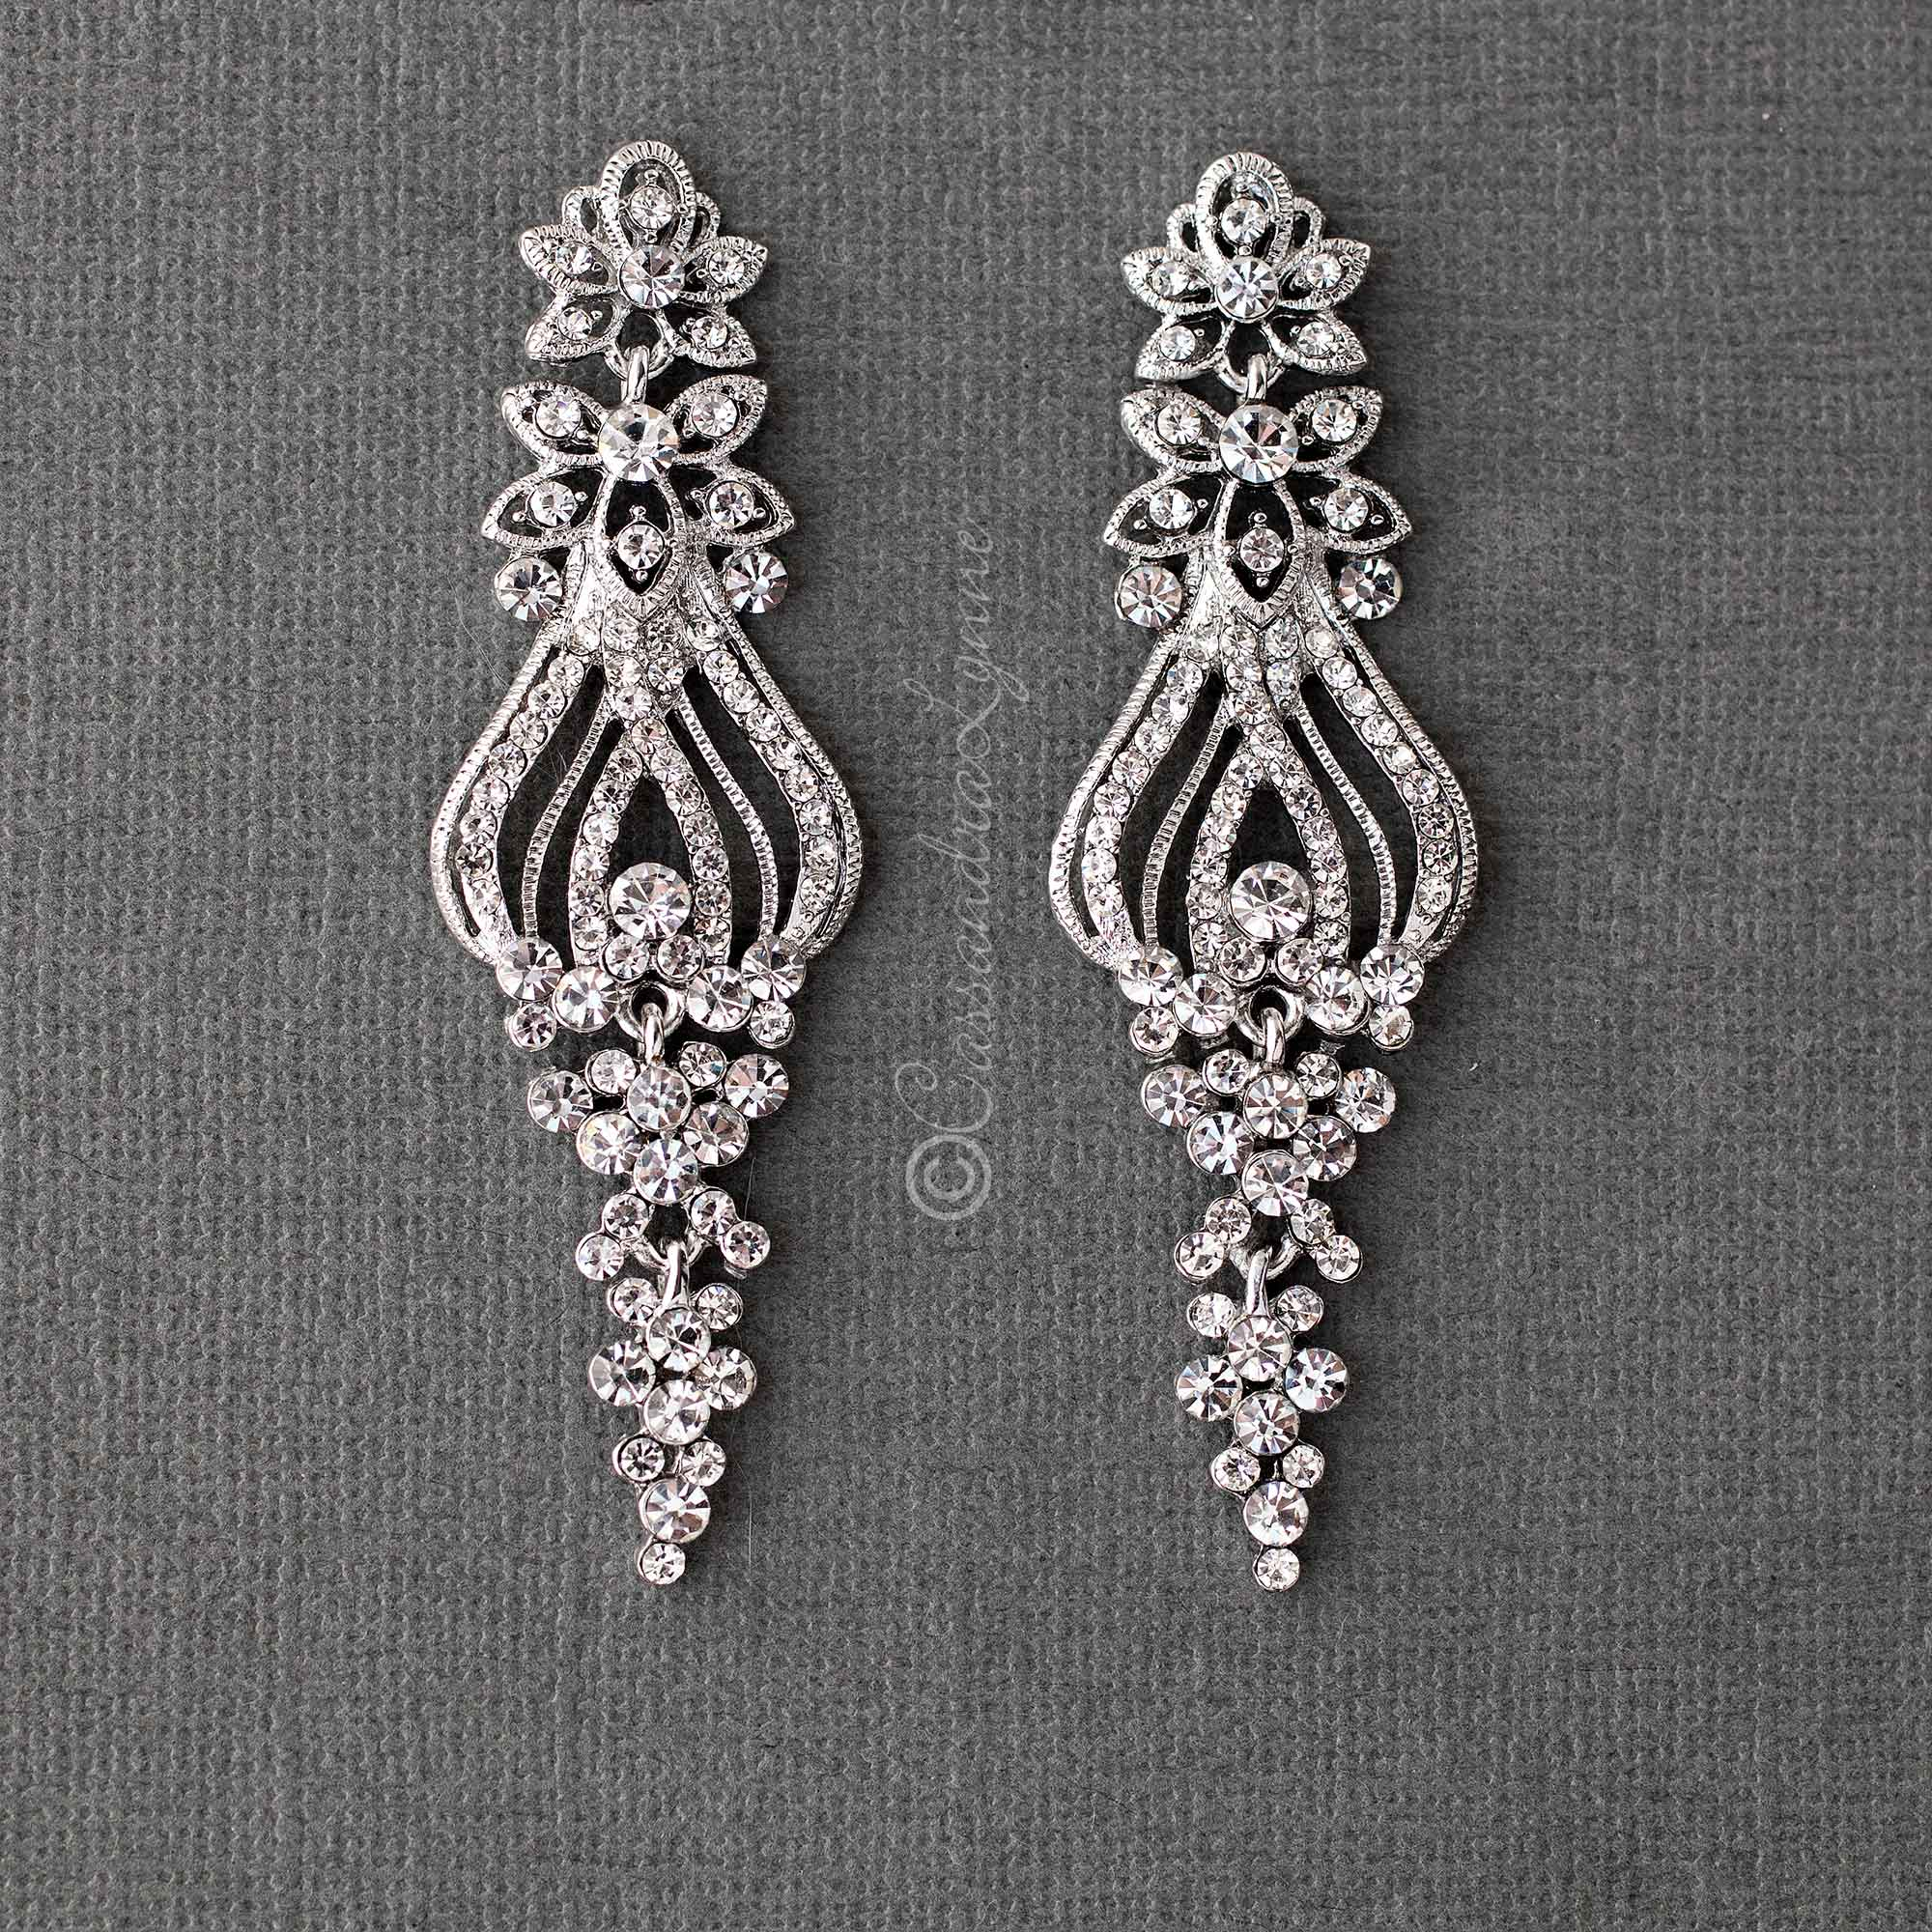 Crystal Floral Earrings for the Bride